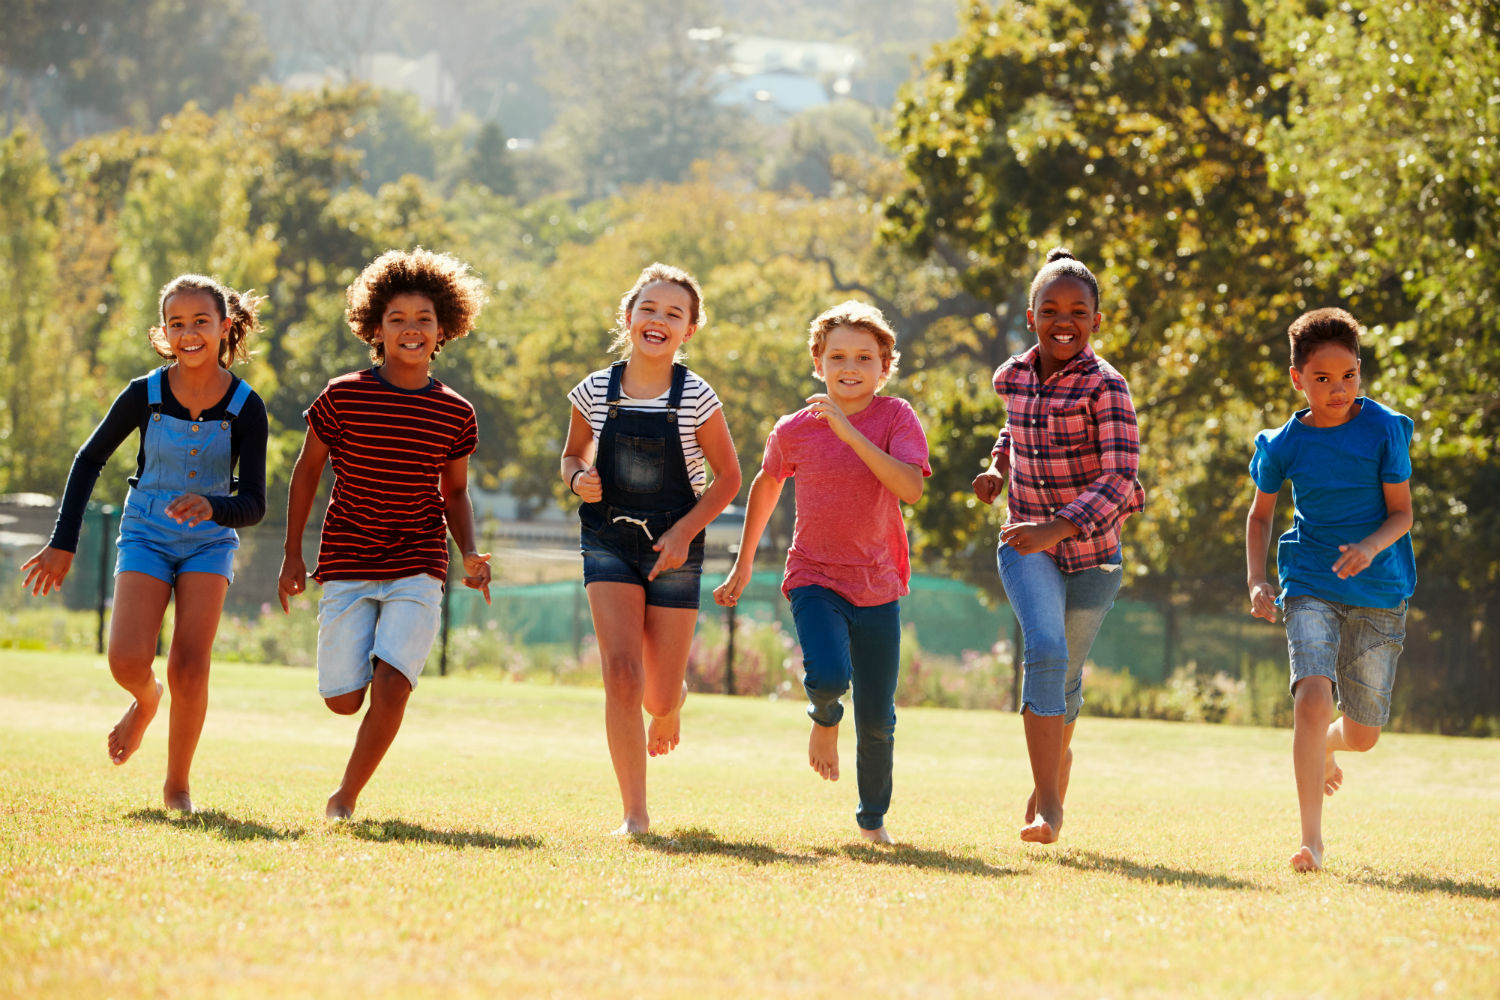 12 ways to get your kids interested in exercise